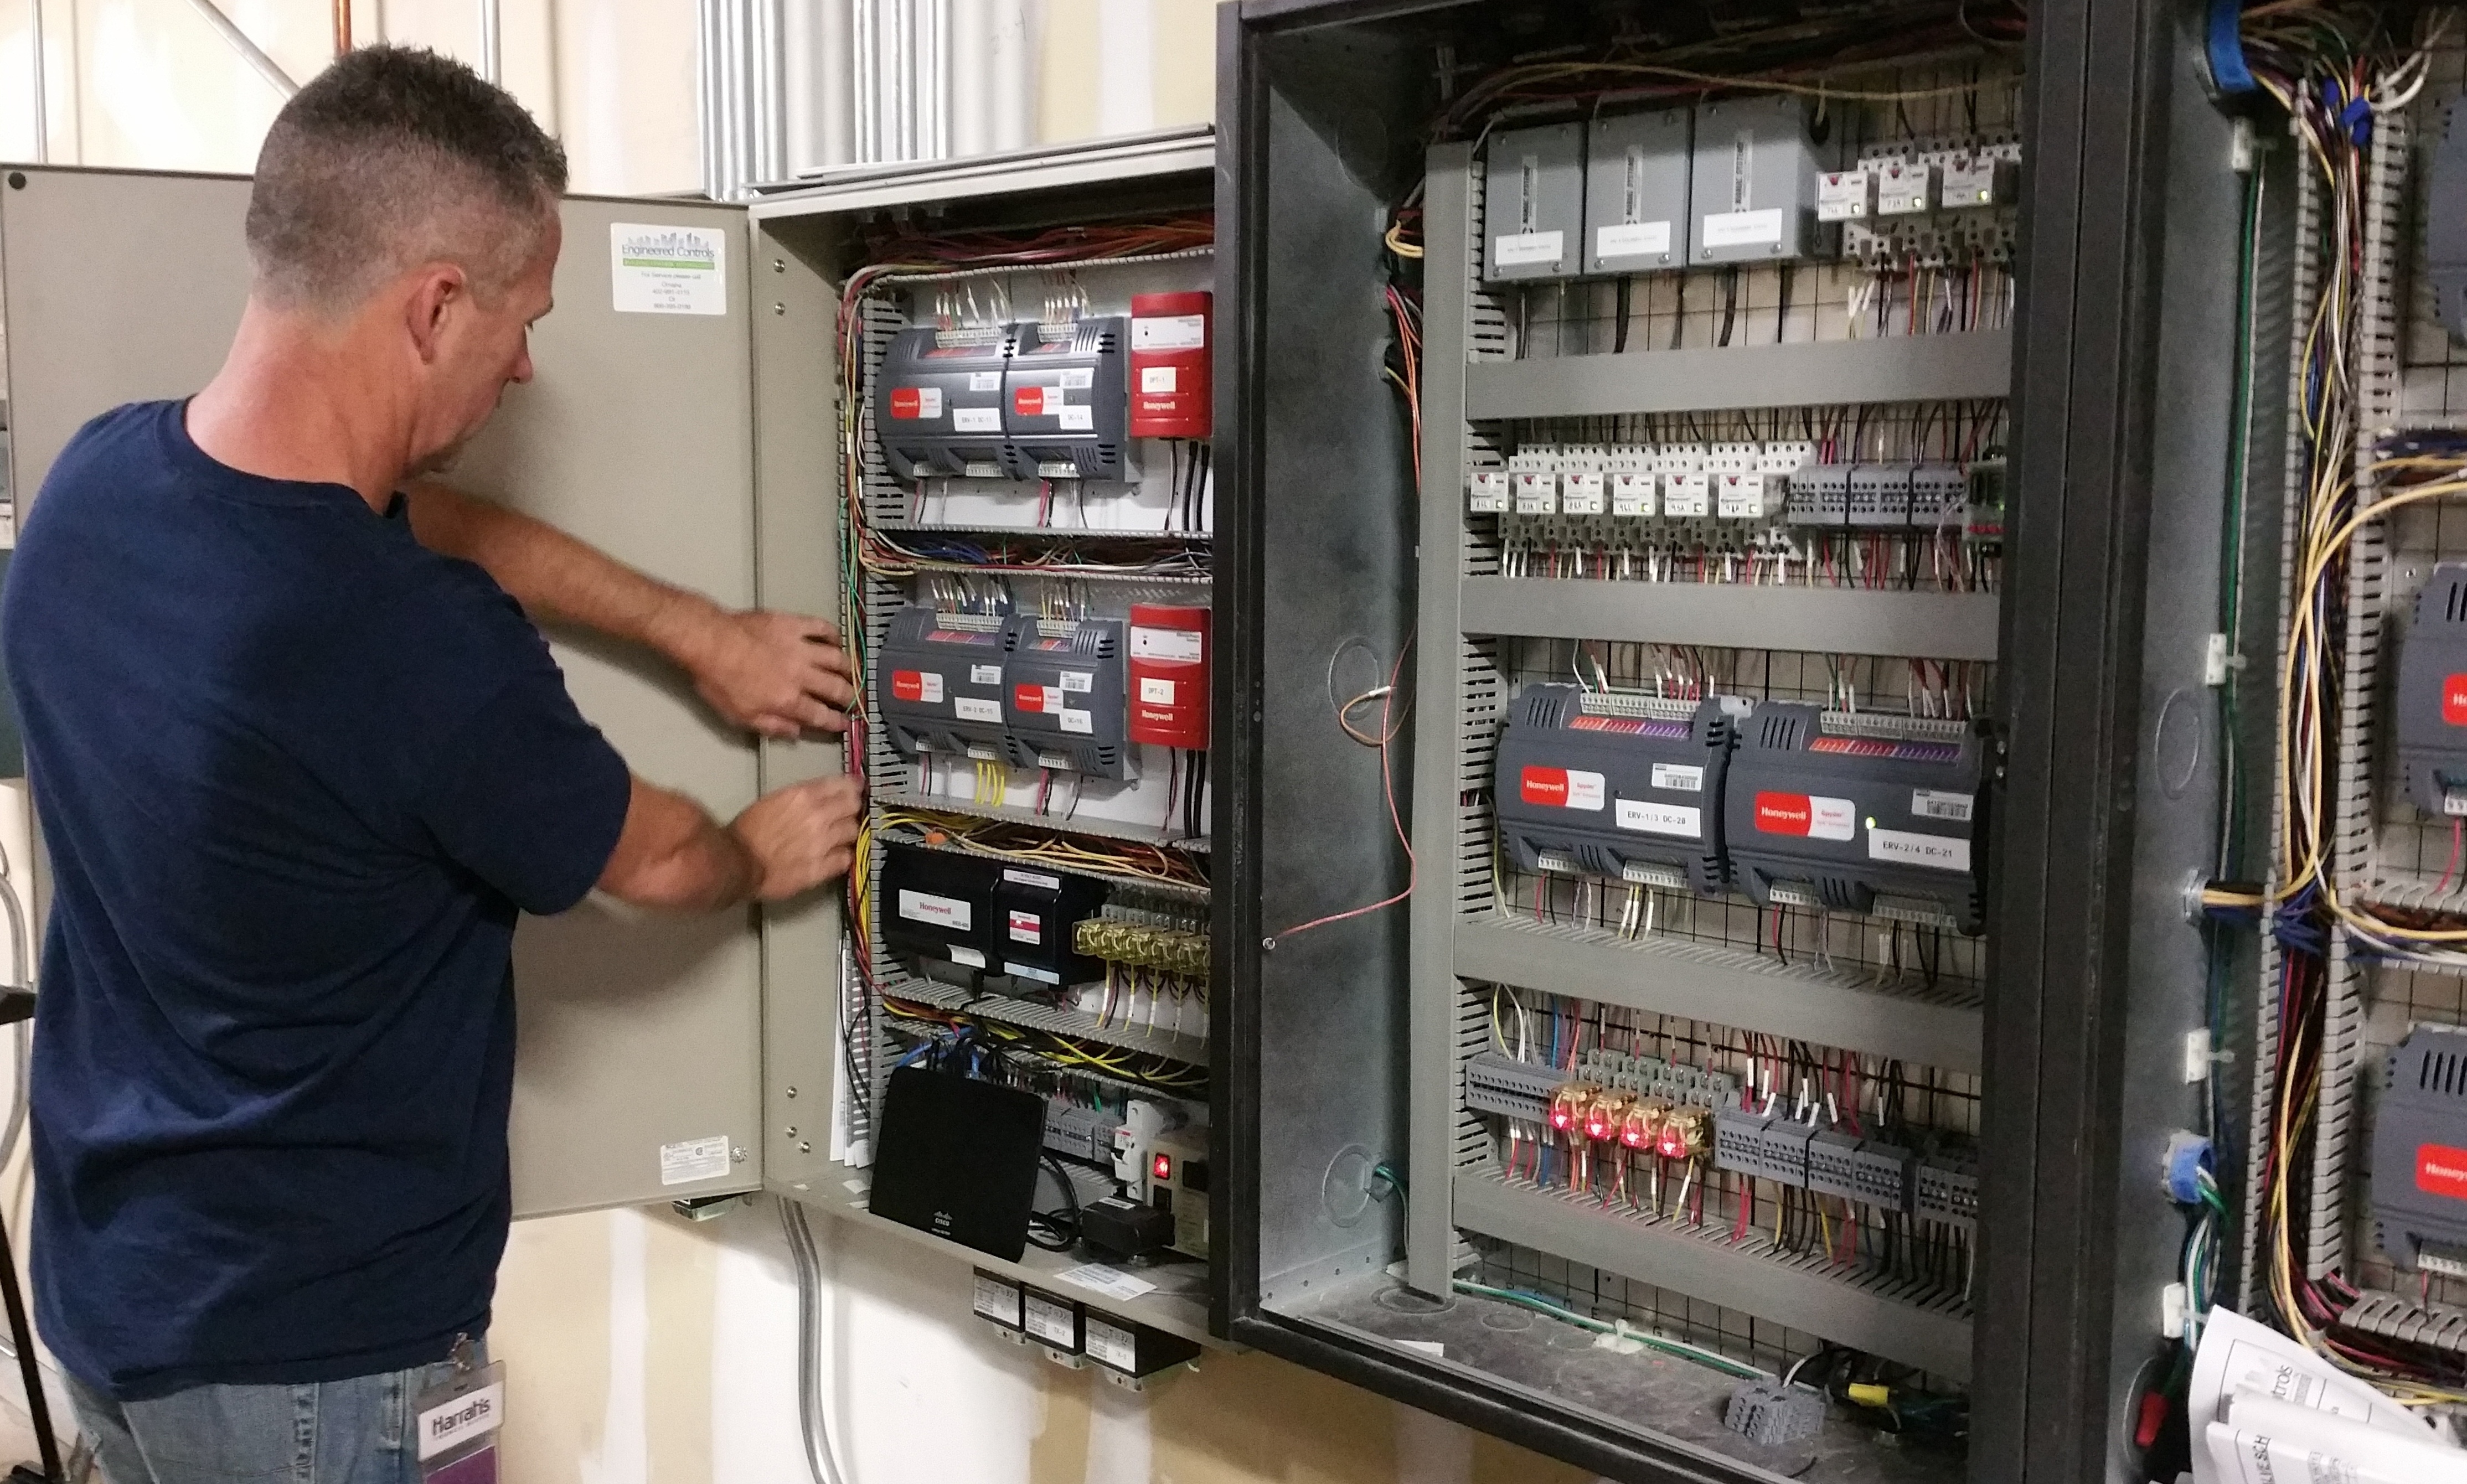 construction retrofit engineered controls building control upgrade transform and manage your buildings